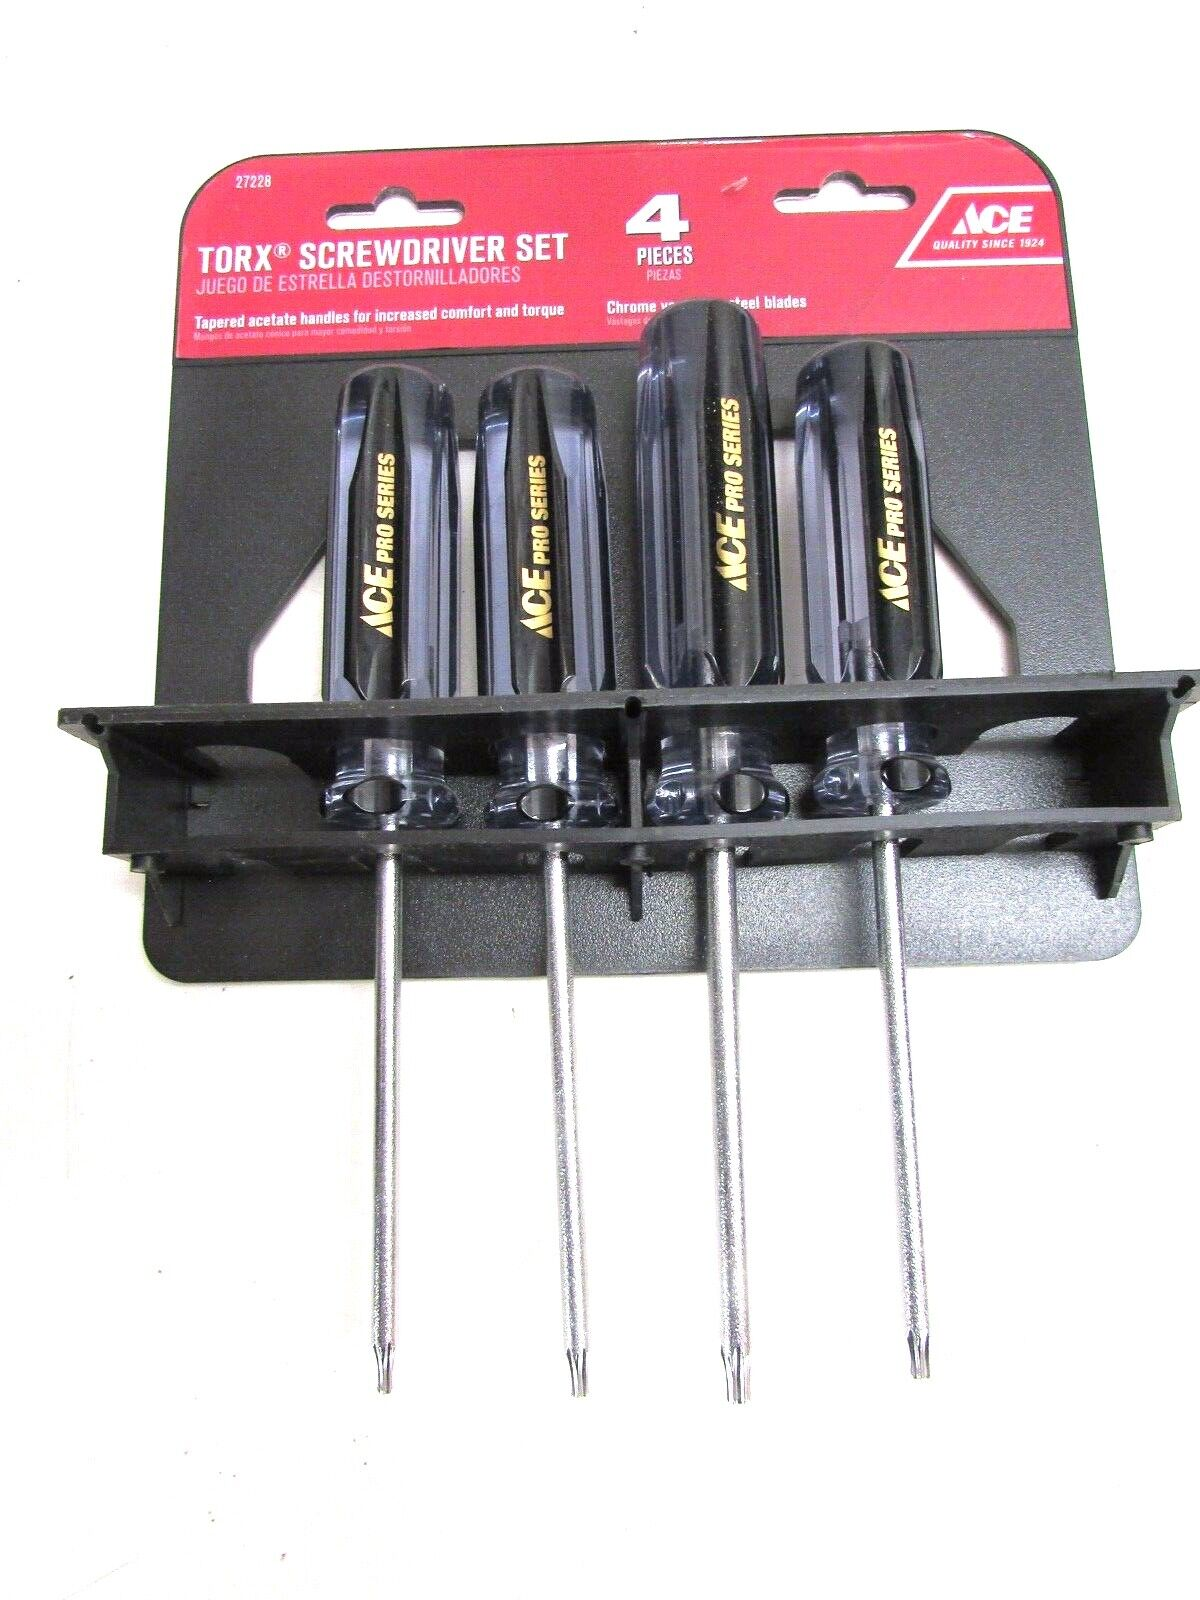 2 Slotted 4-Piece Screwdriver Set 2 Phillips ACE Screwdrivers 28876